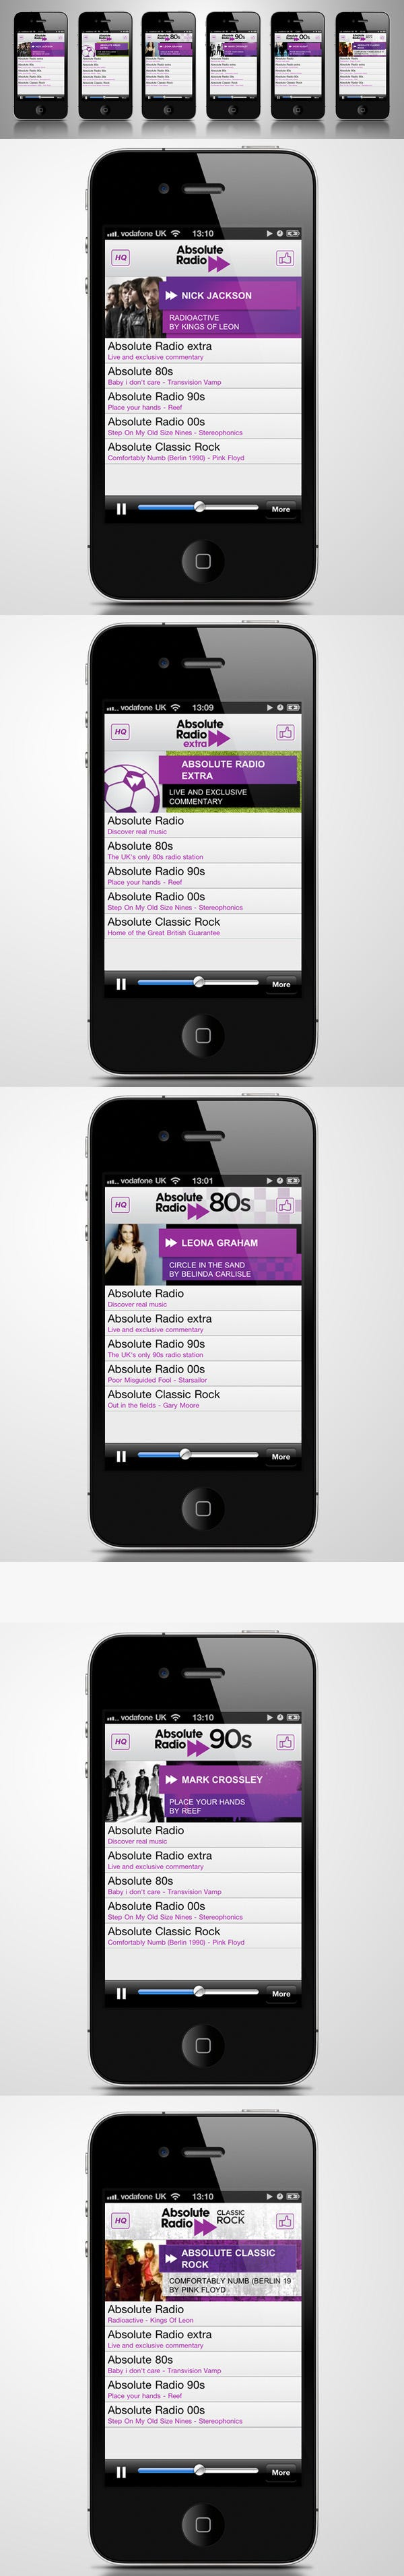 radio player android mobile app design